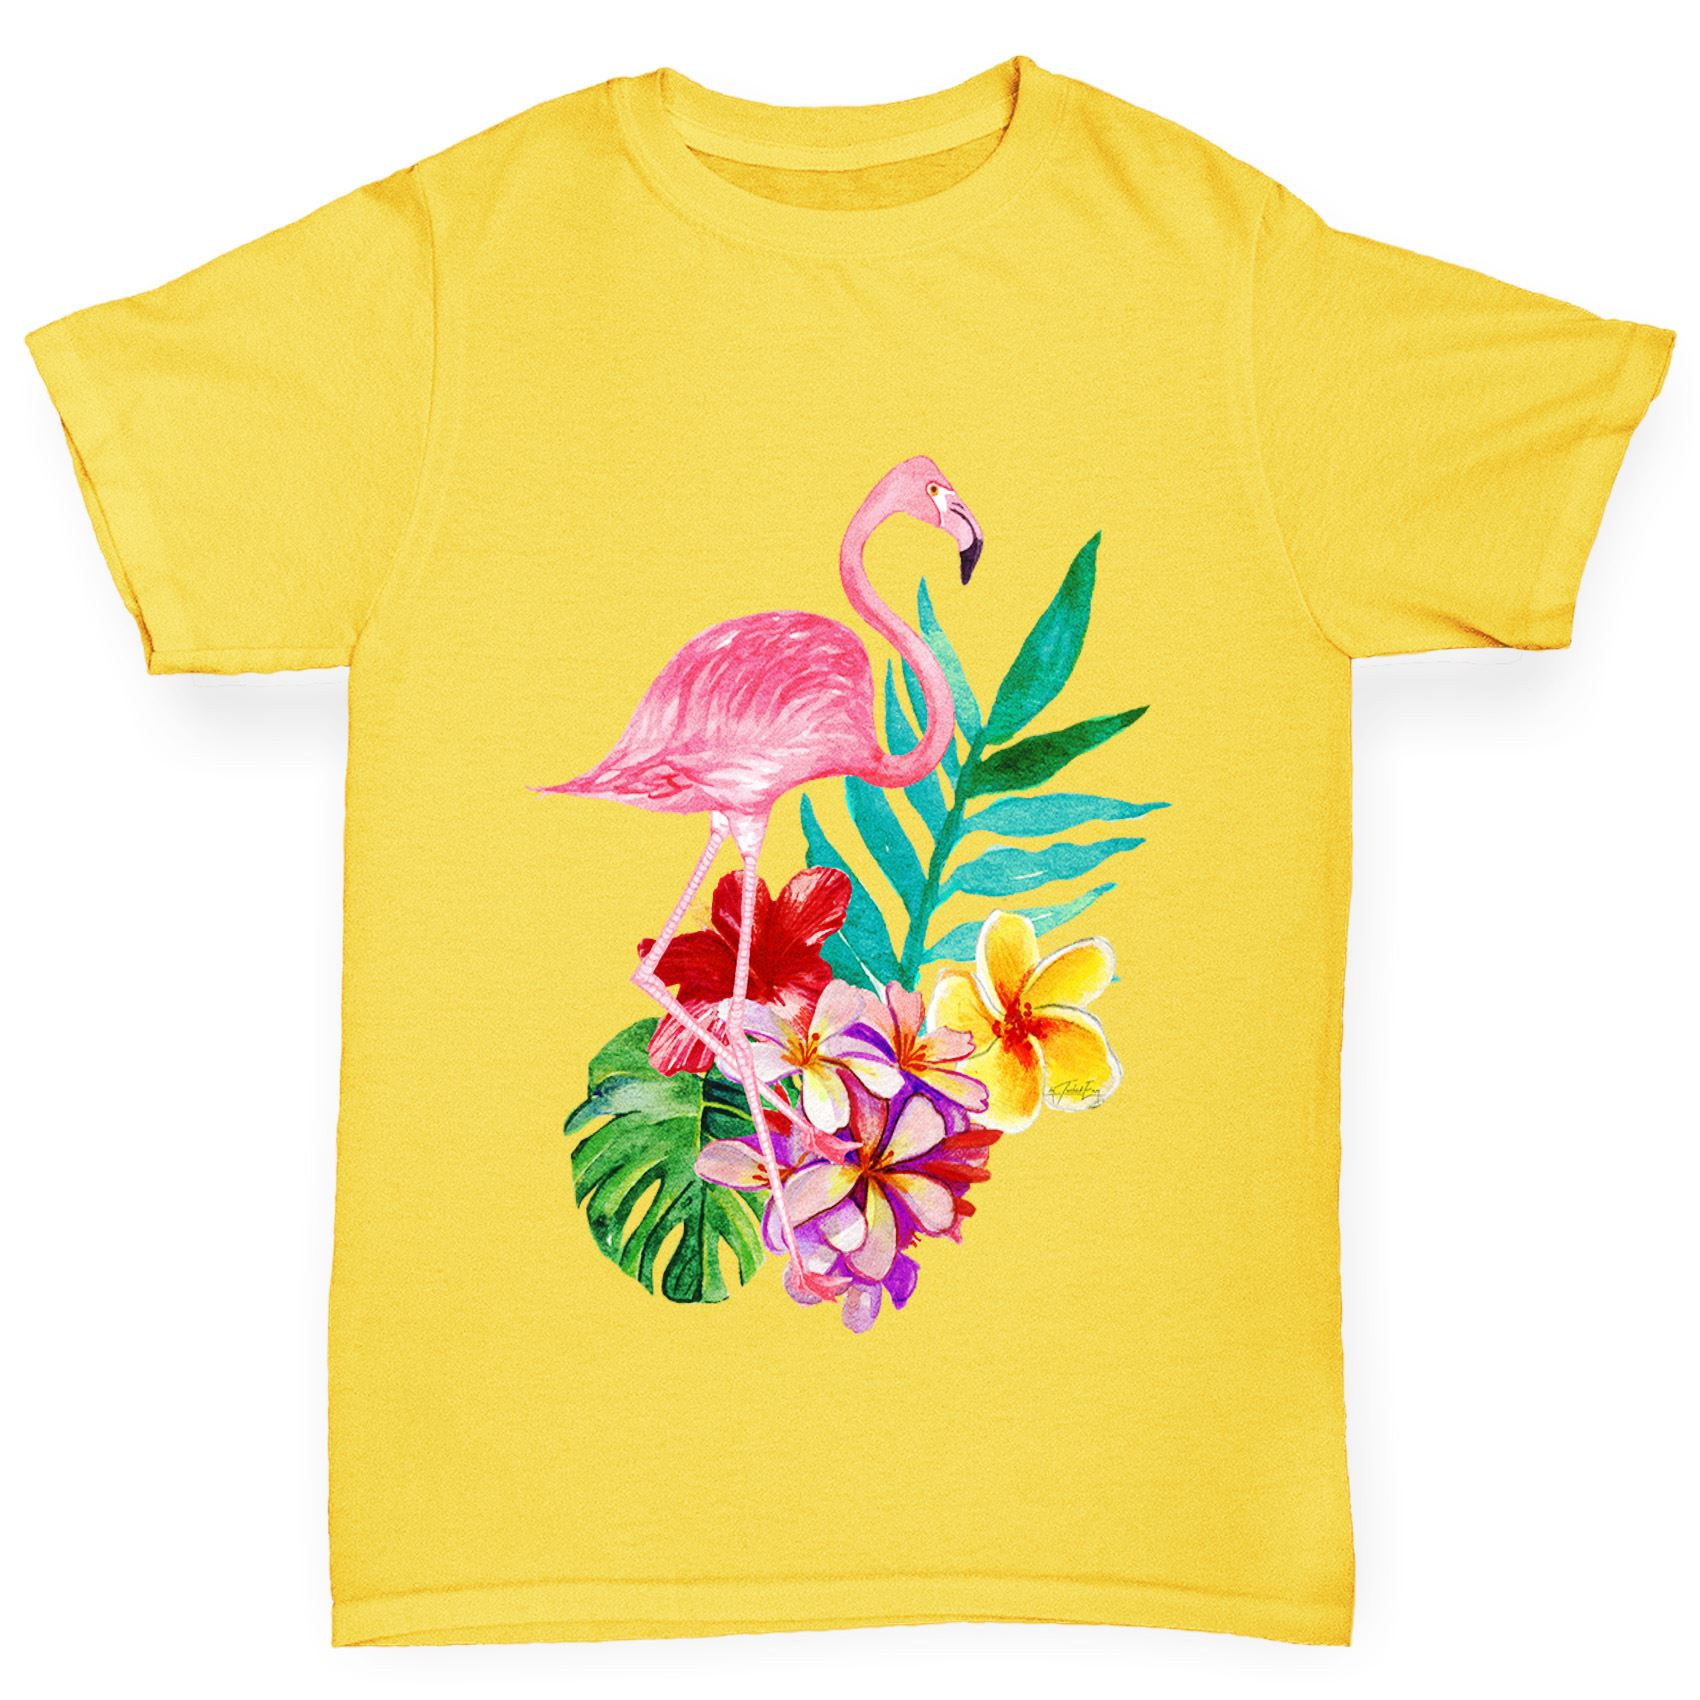 Twisted envy fille drôle chic chick t-shirt